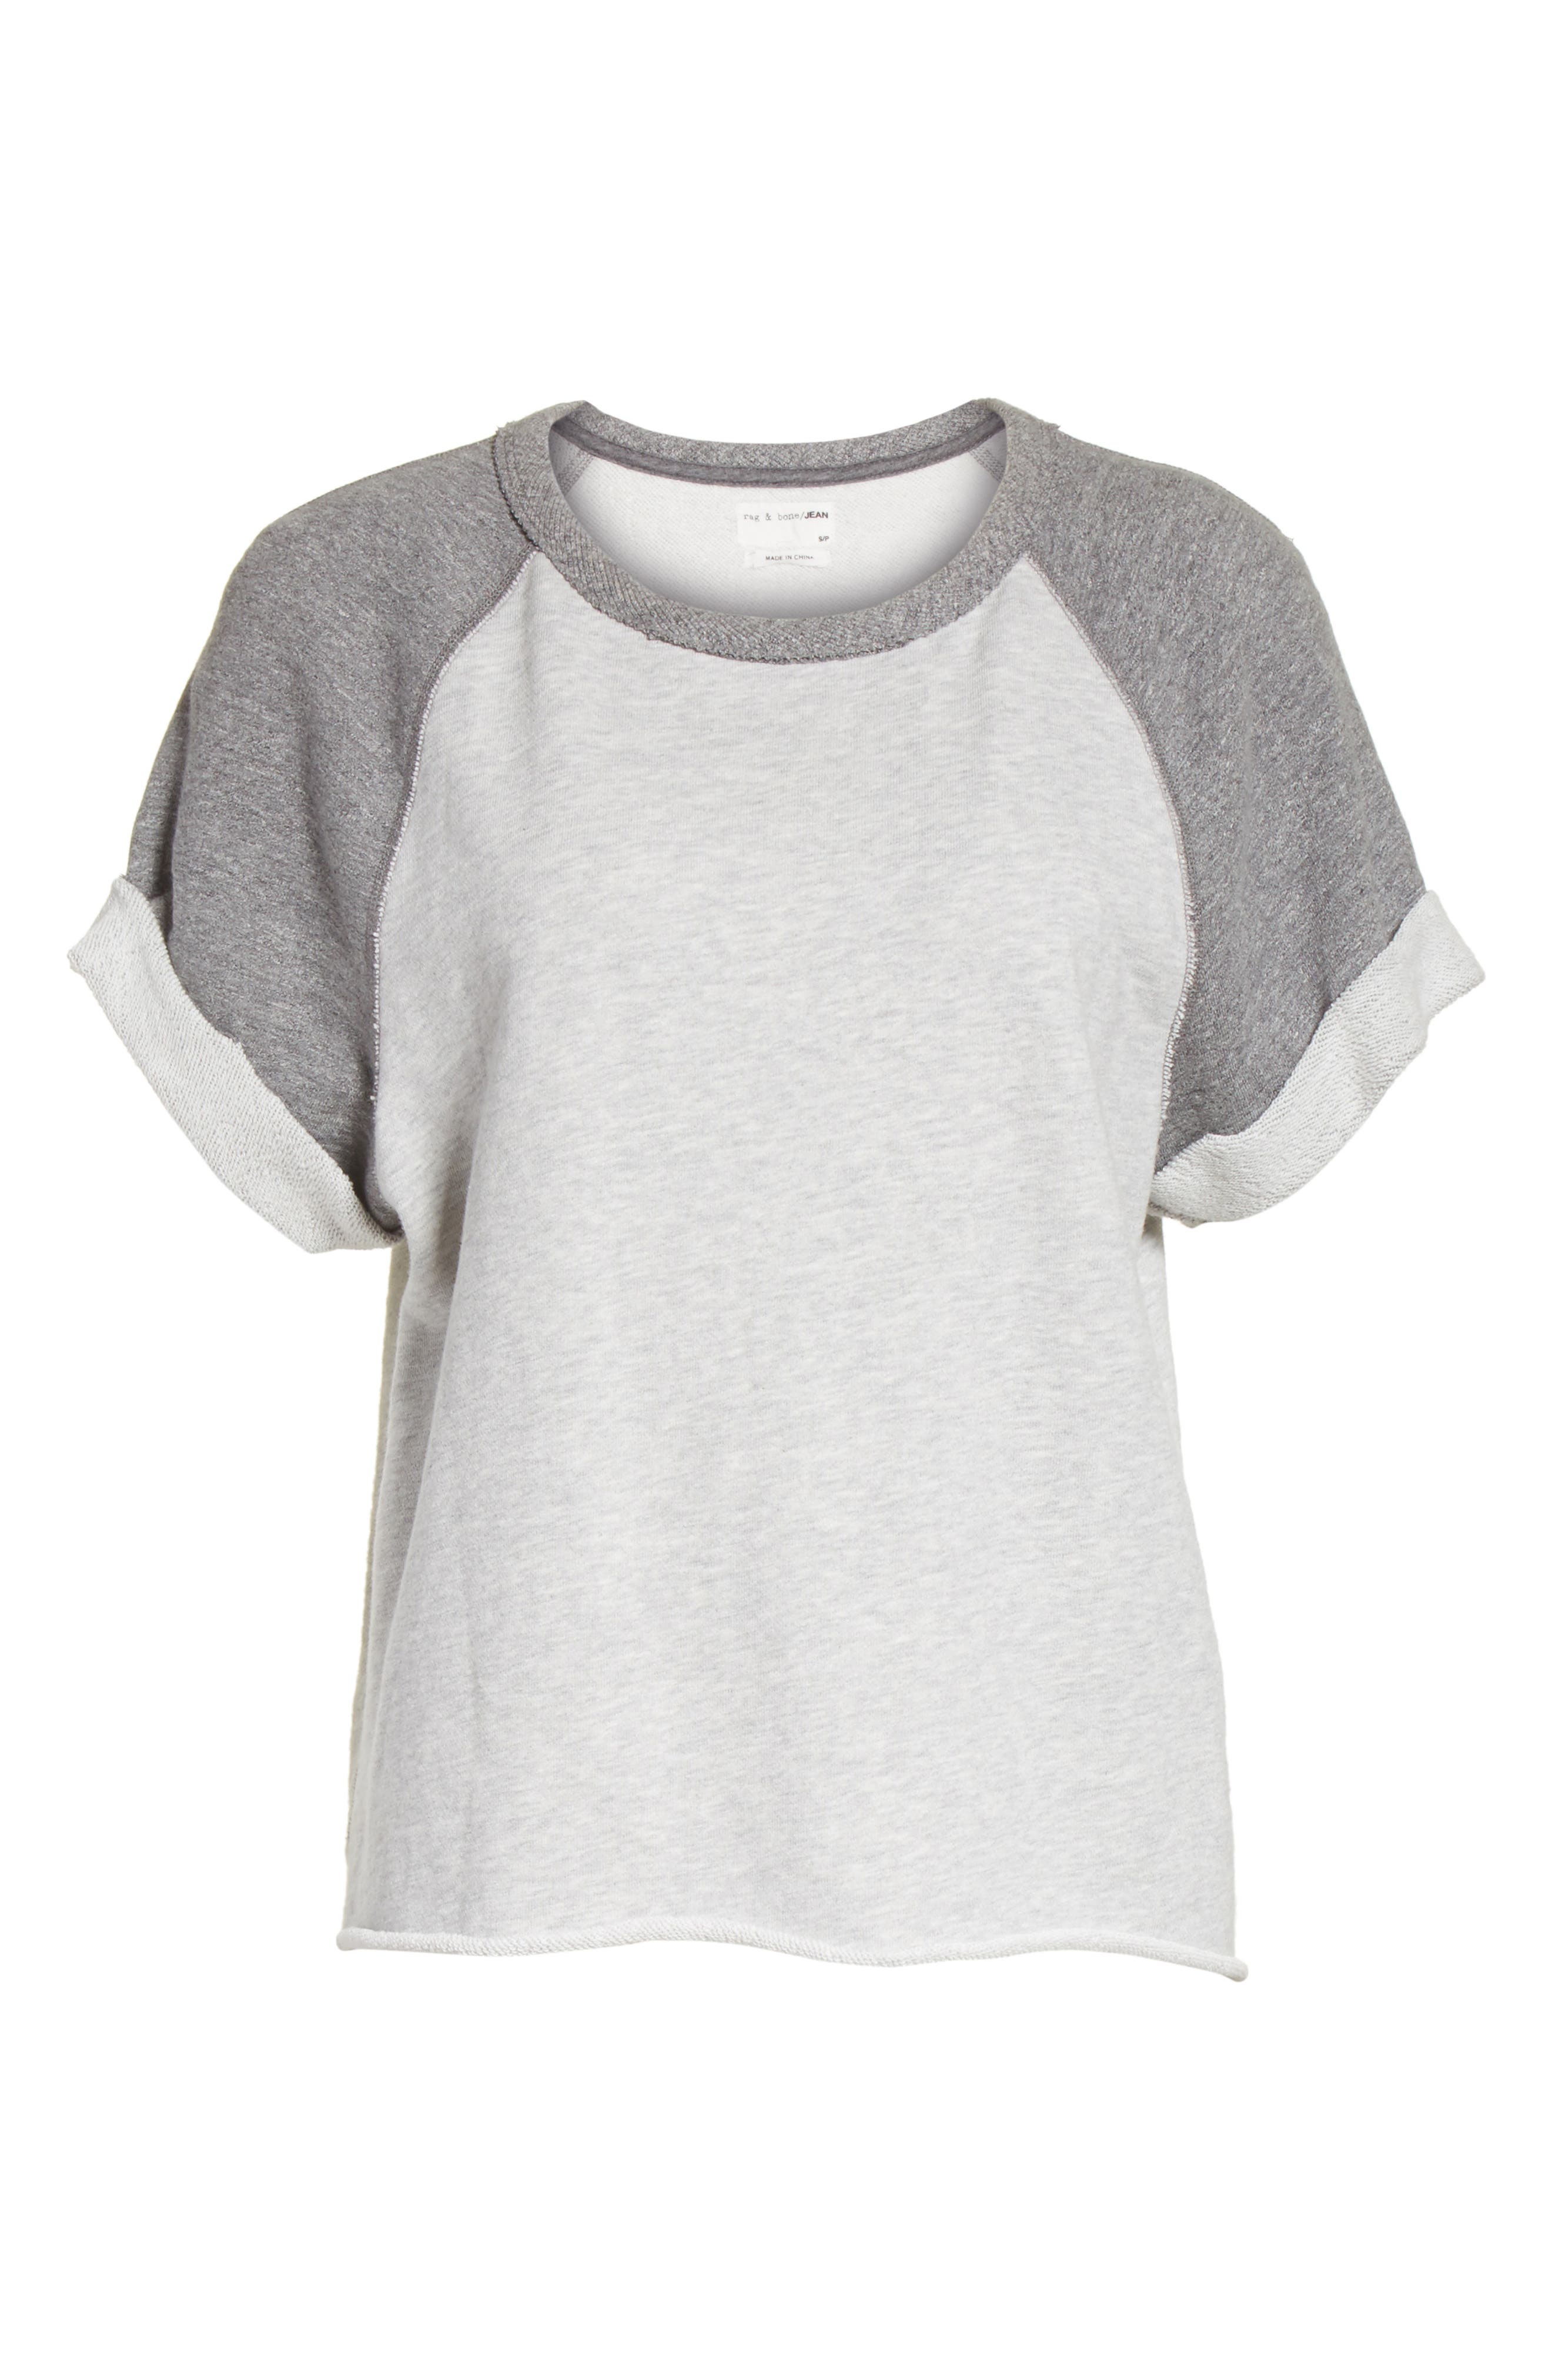 Terry Tee,                             Alternate thumbnail 6, color,                             063